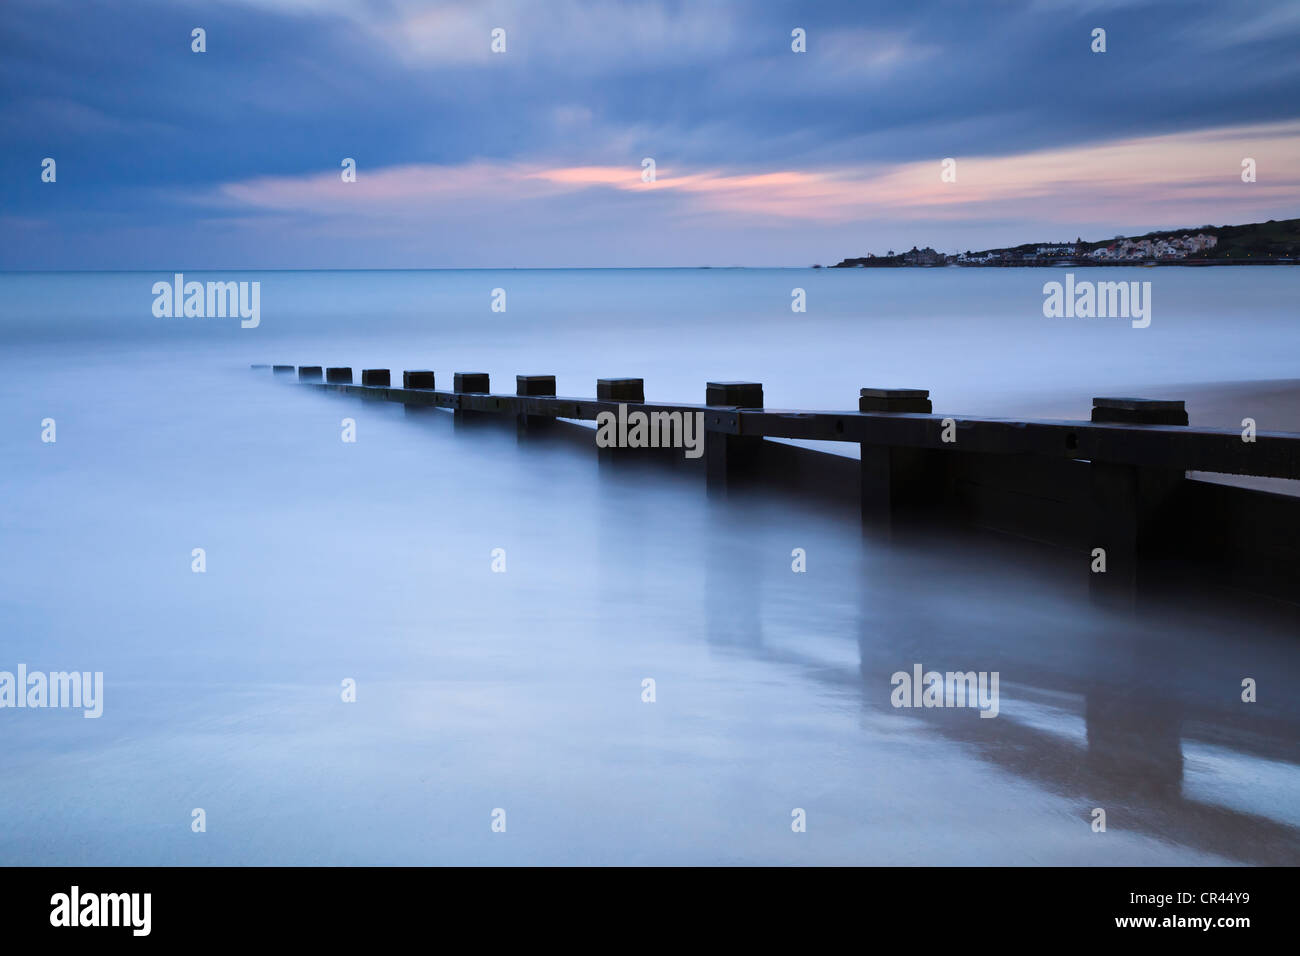 Dusk, Swanage Bay, Dorset, UK looking towards the town from the north beach, with a wooden groyne in the foreground. - Stock Image